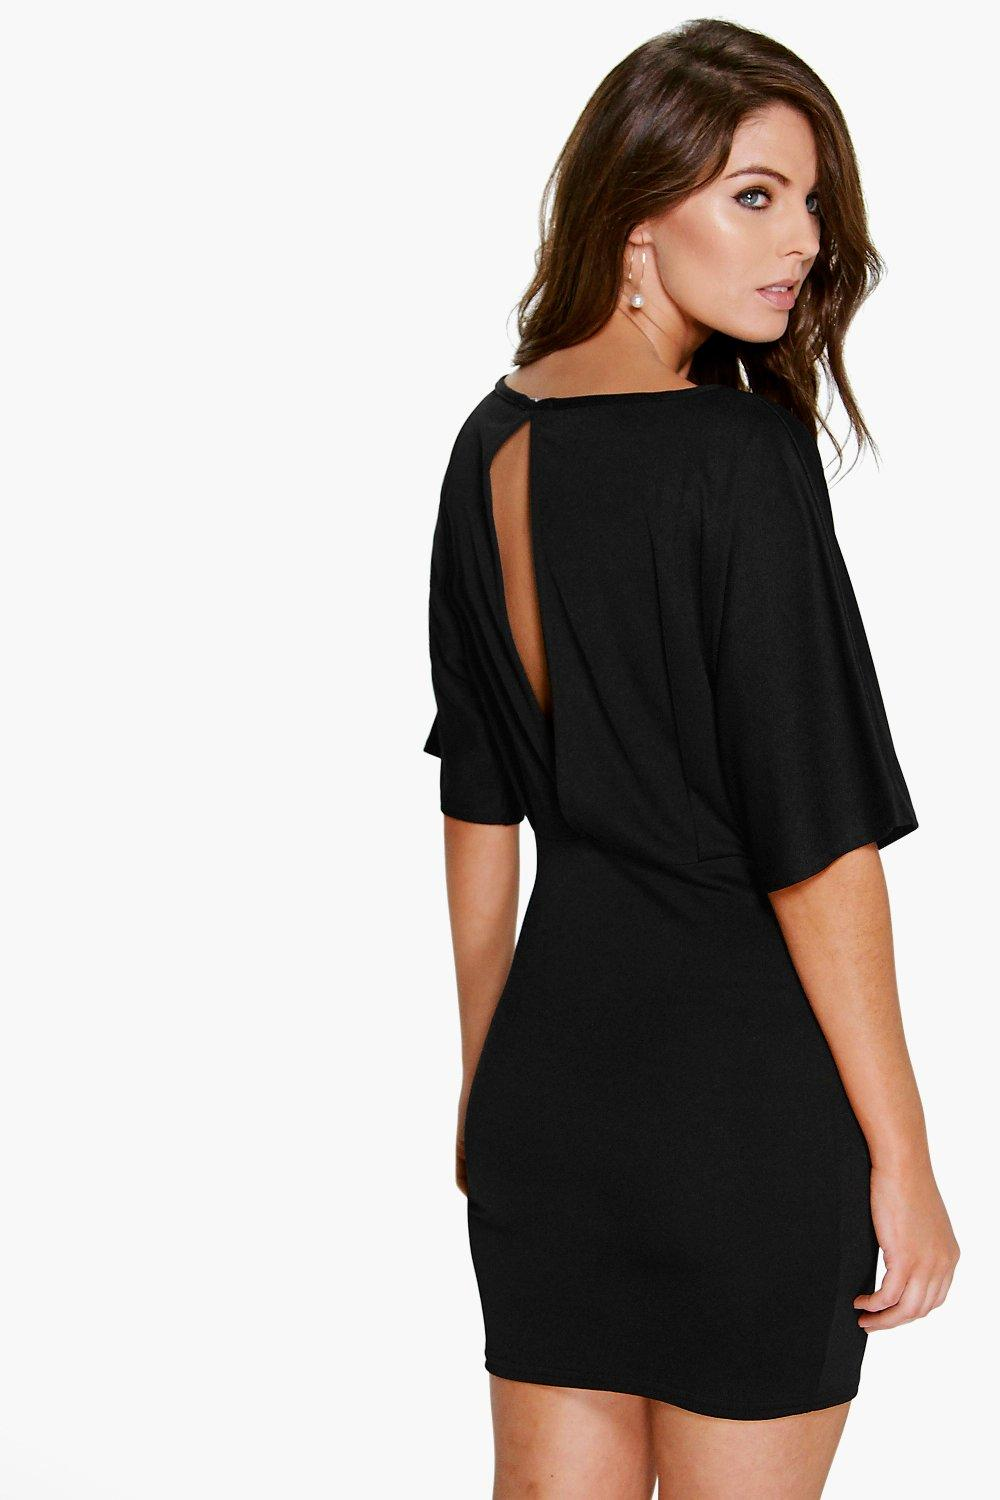 Kathy Angel Sleeve Bodycon Dress